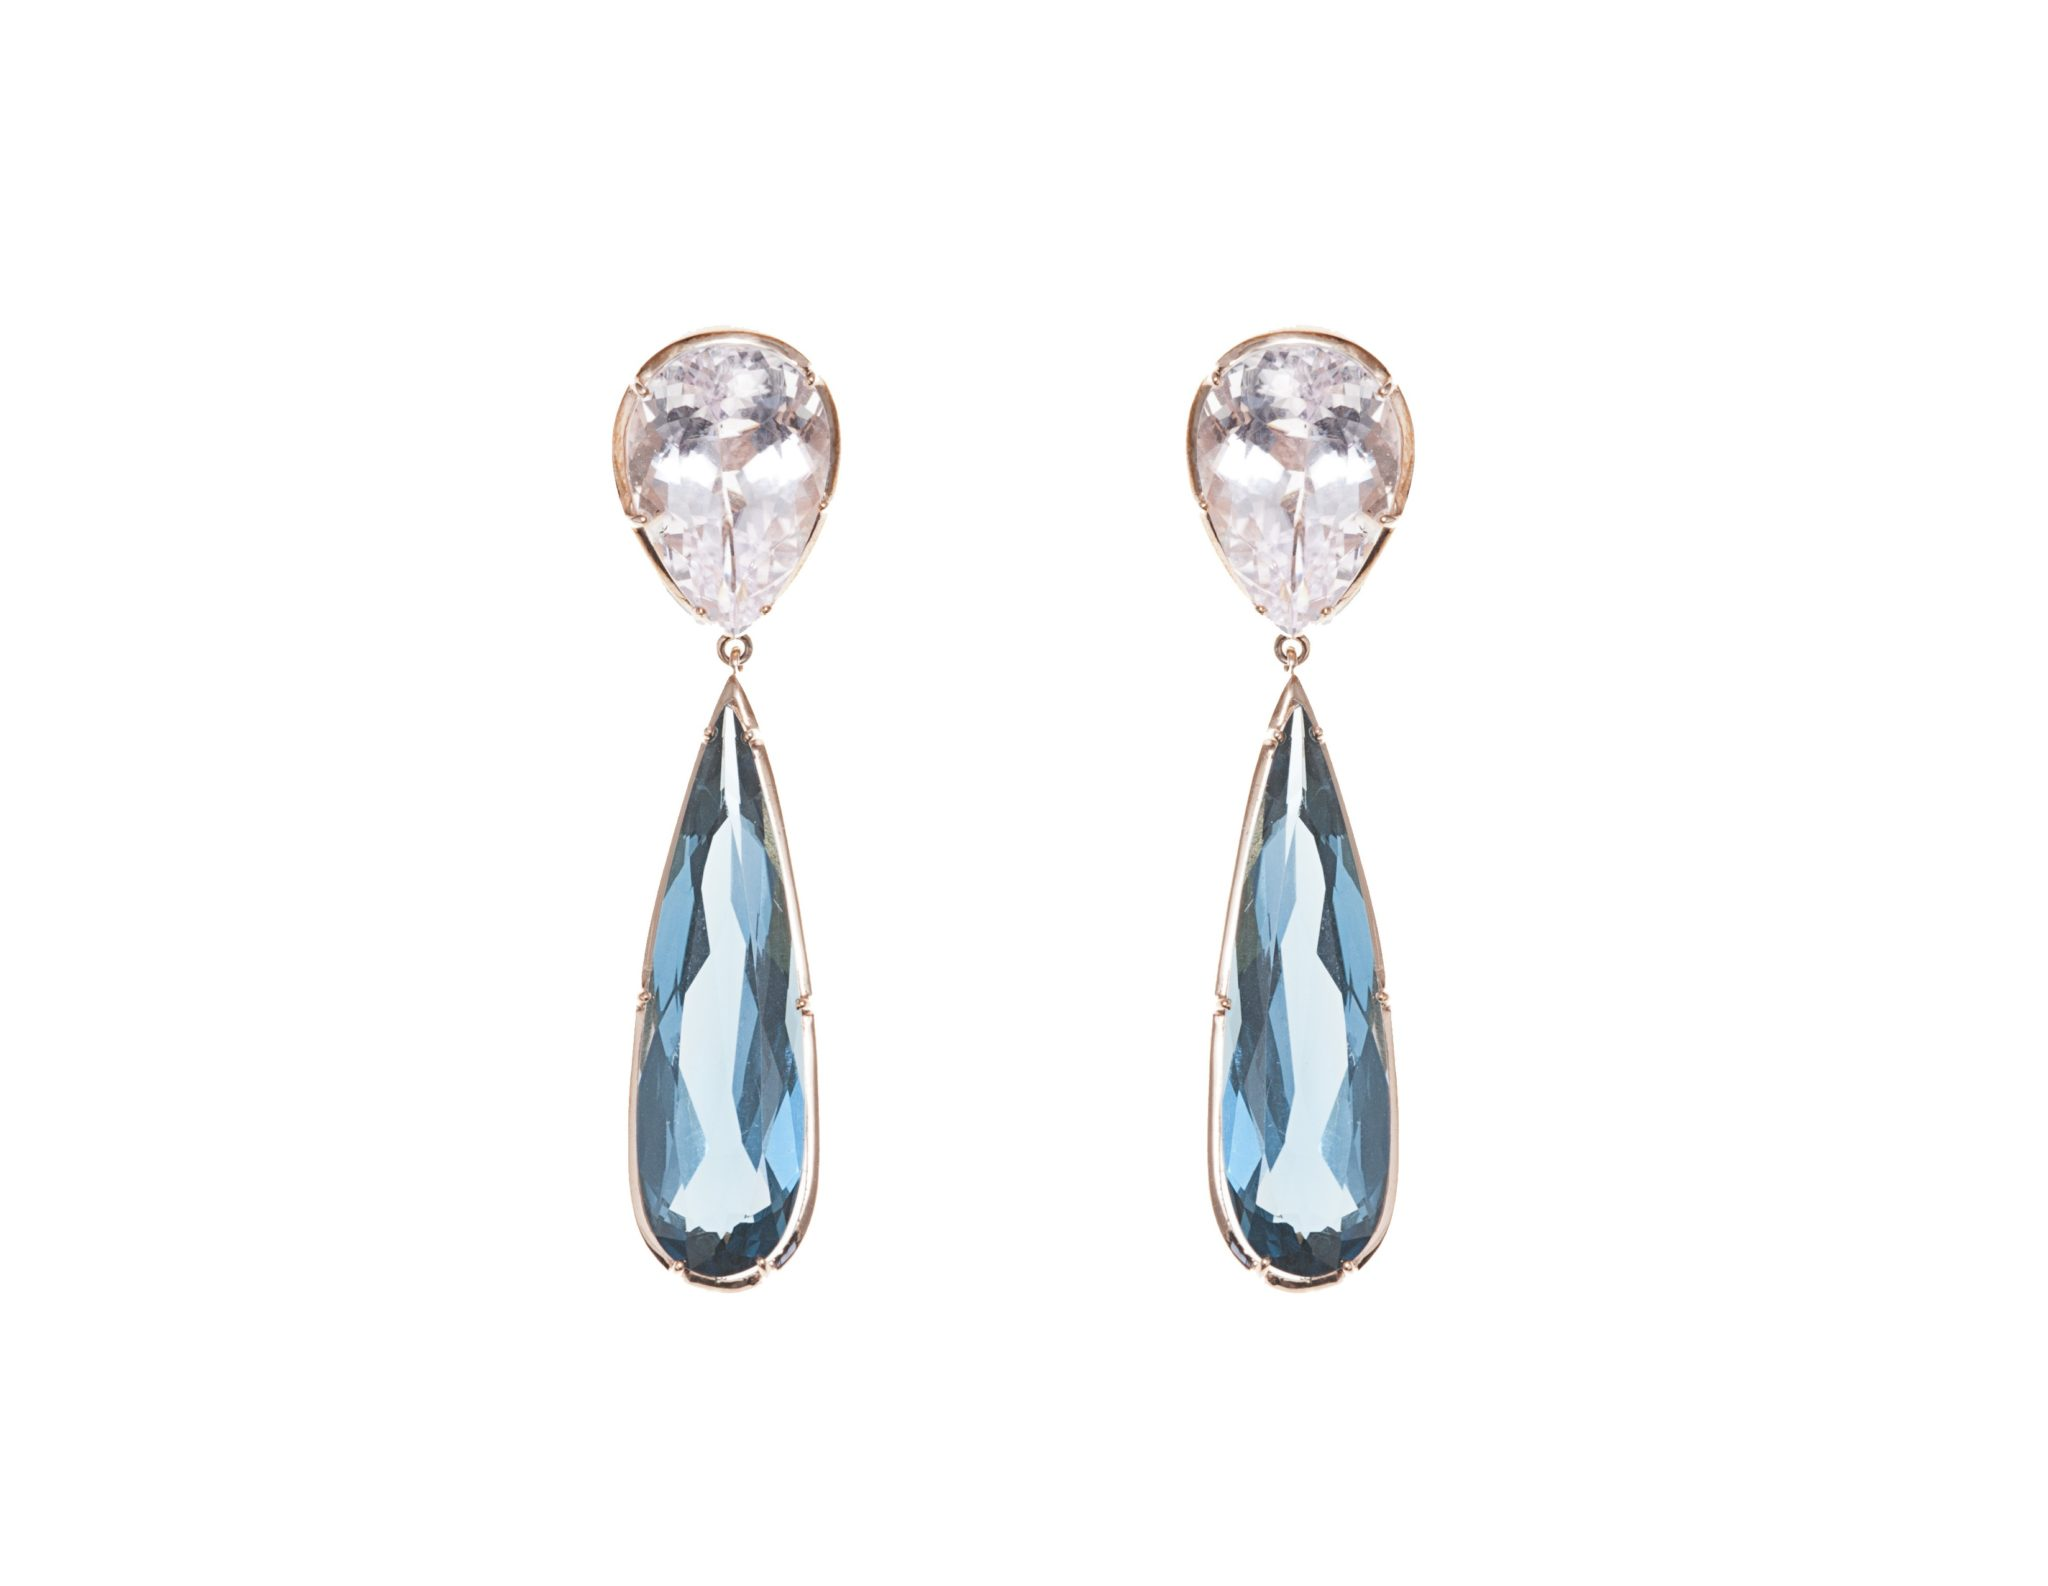 aquamarine goods earrings raw amet kunzite discovered